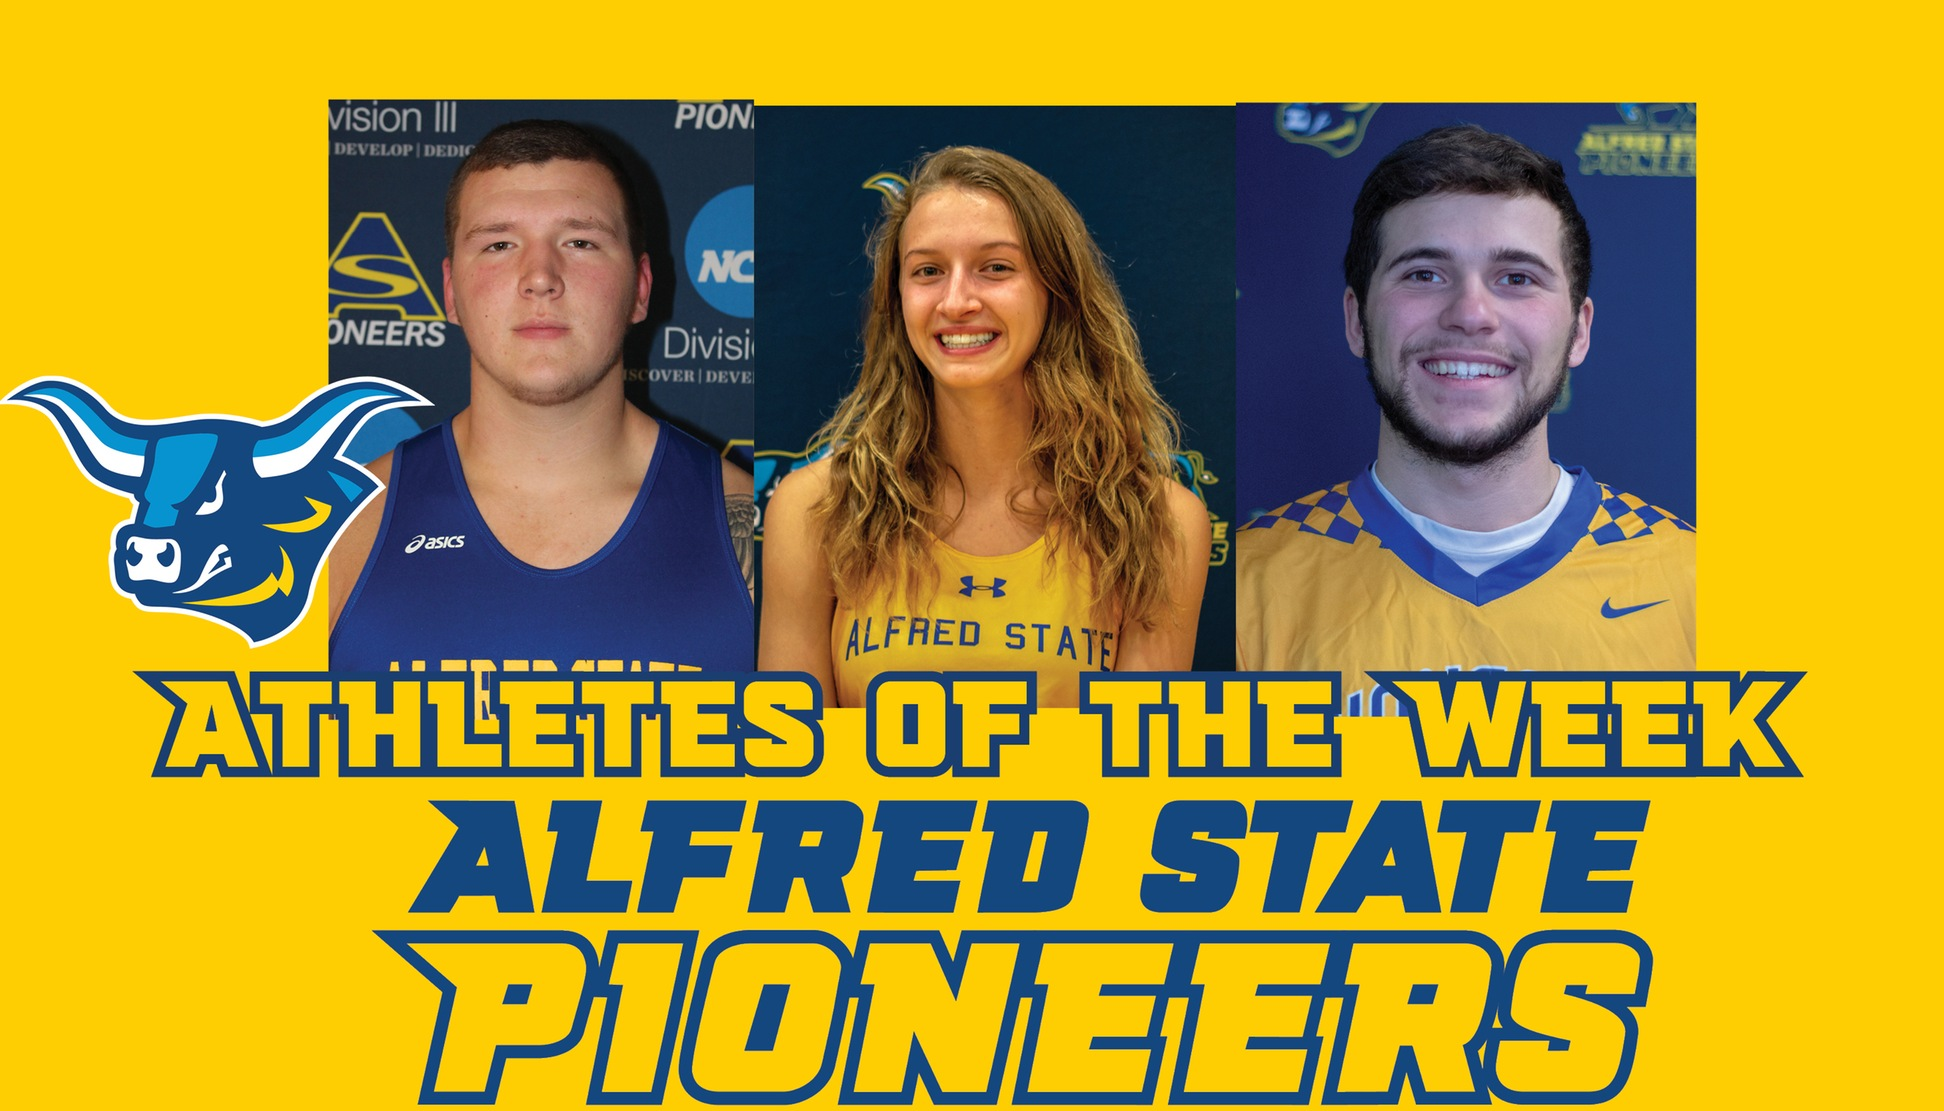 Paul Kemsley, Emily Brigman, and Nic Covelli Named Athletes of the Week